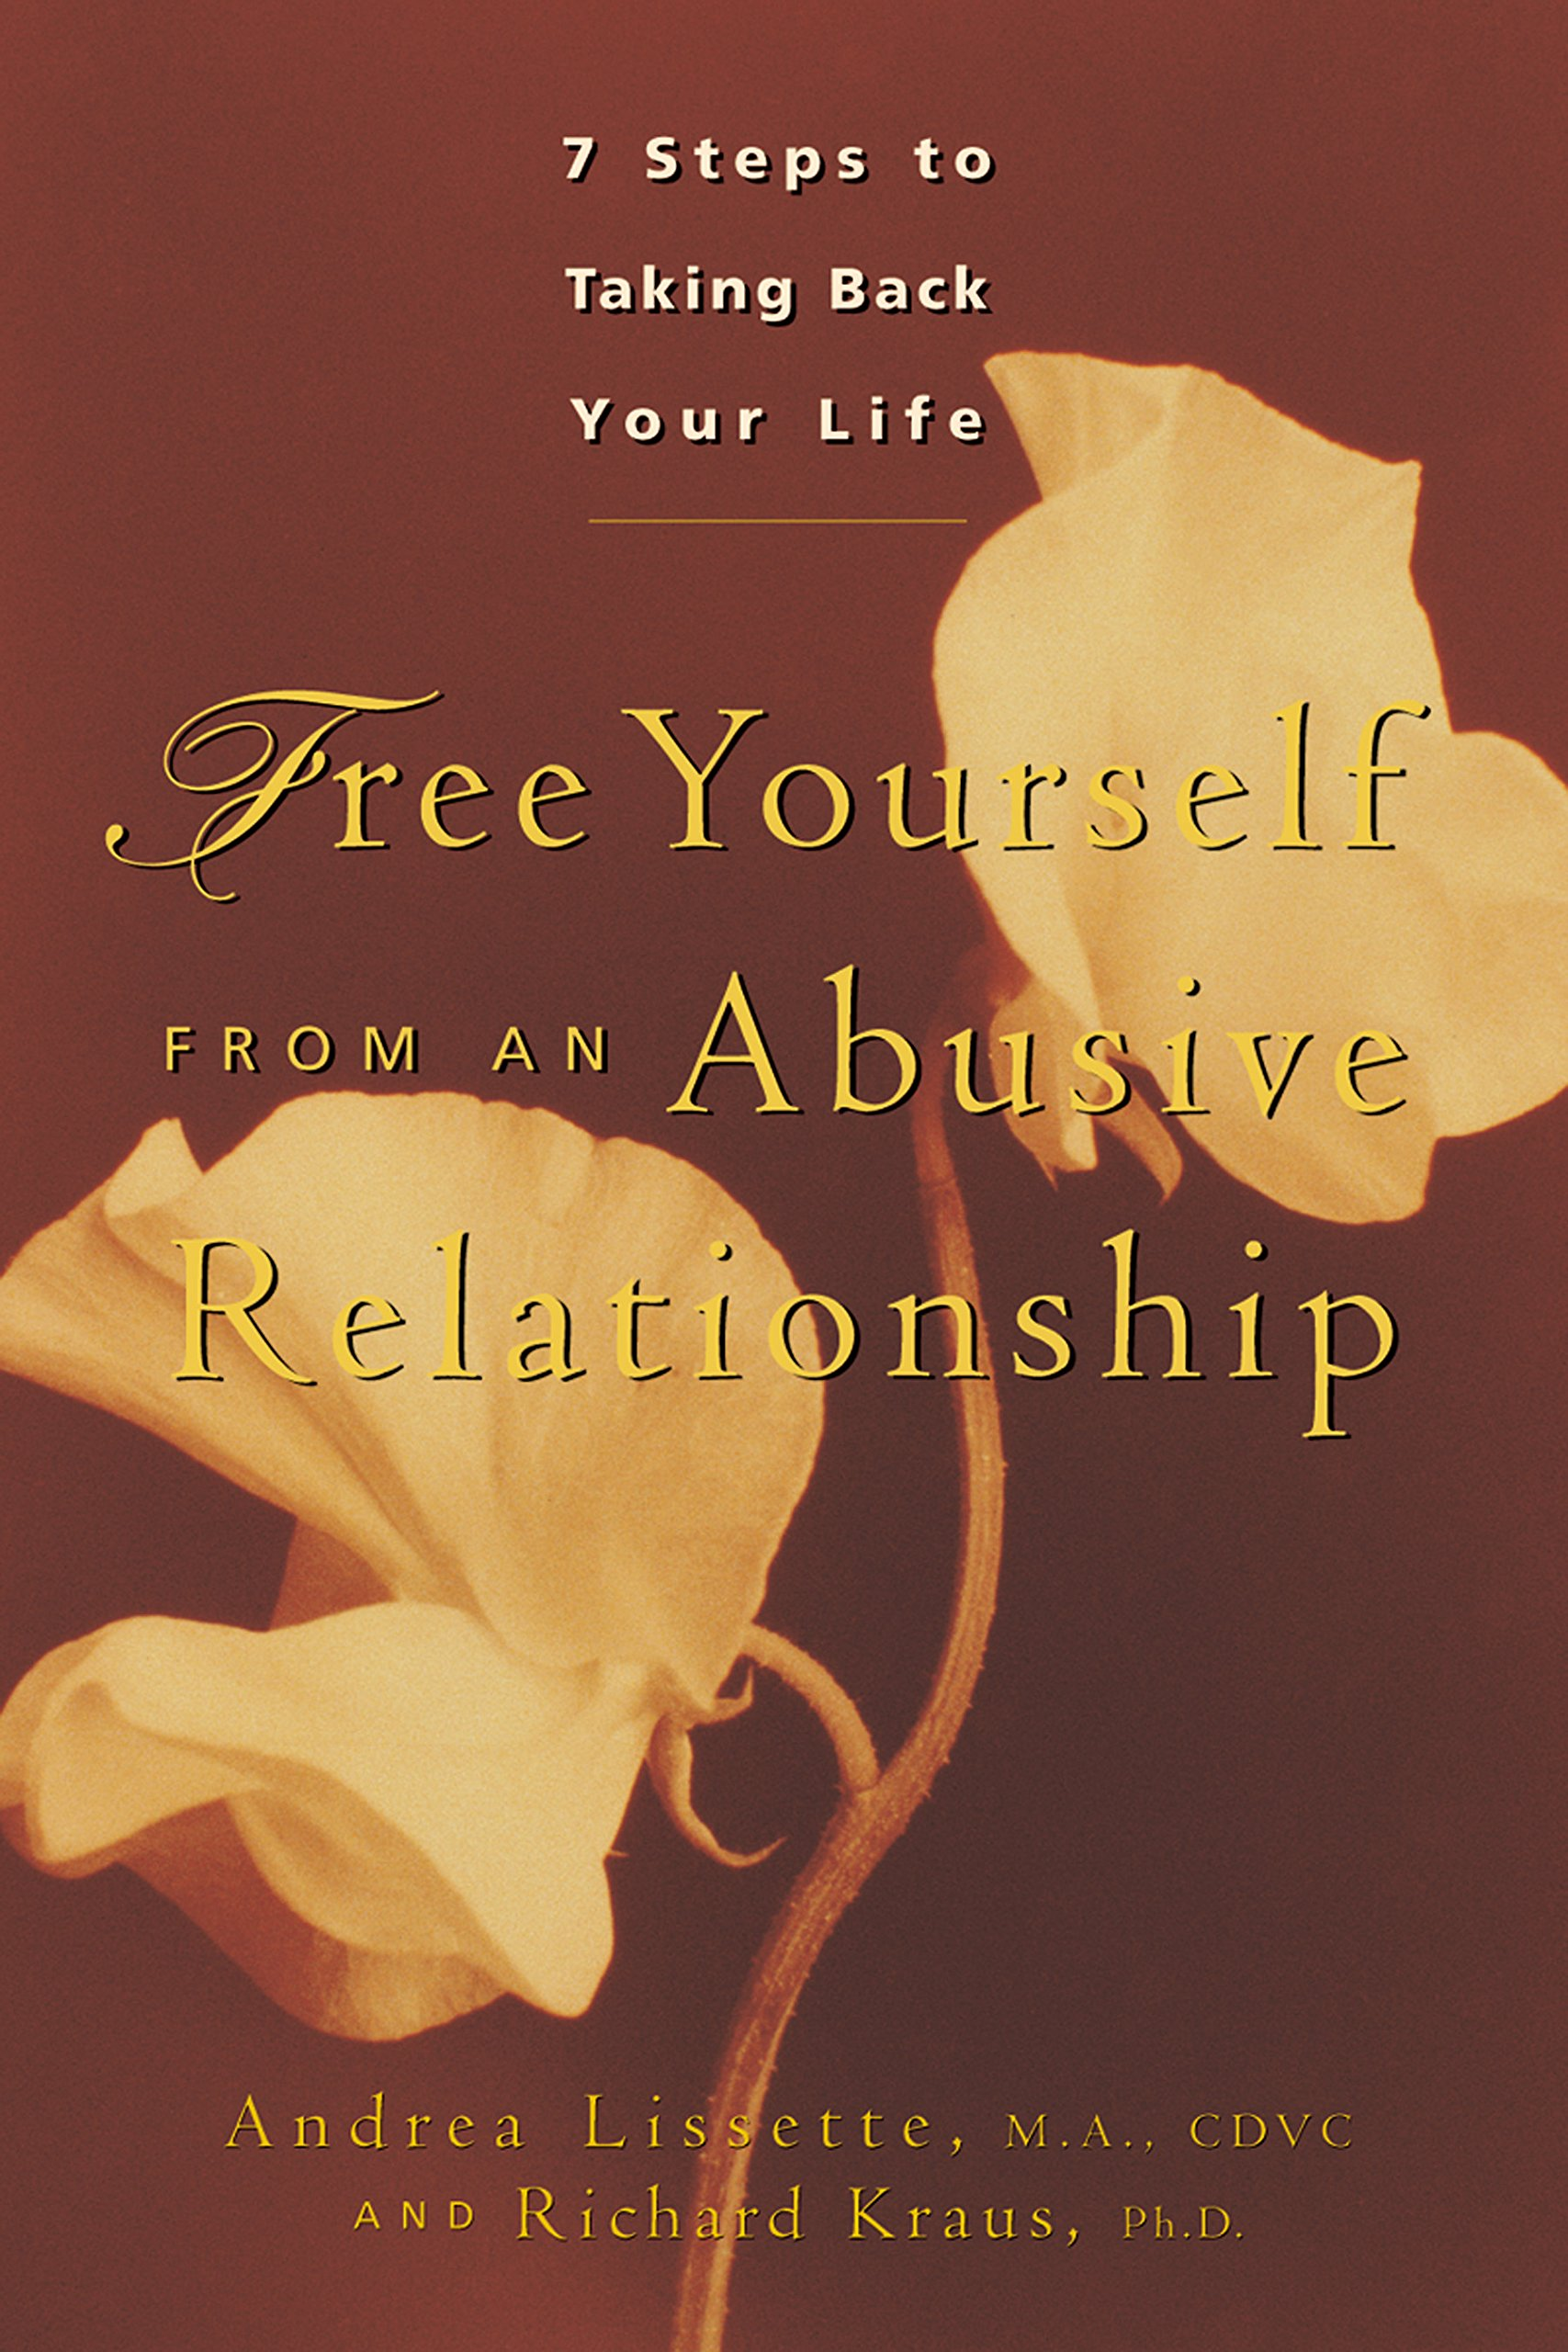 Free Yourself From an Abusive Relationship: A Guide to Taking Back Your Life pdf